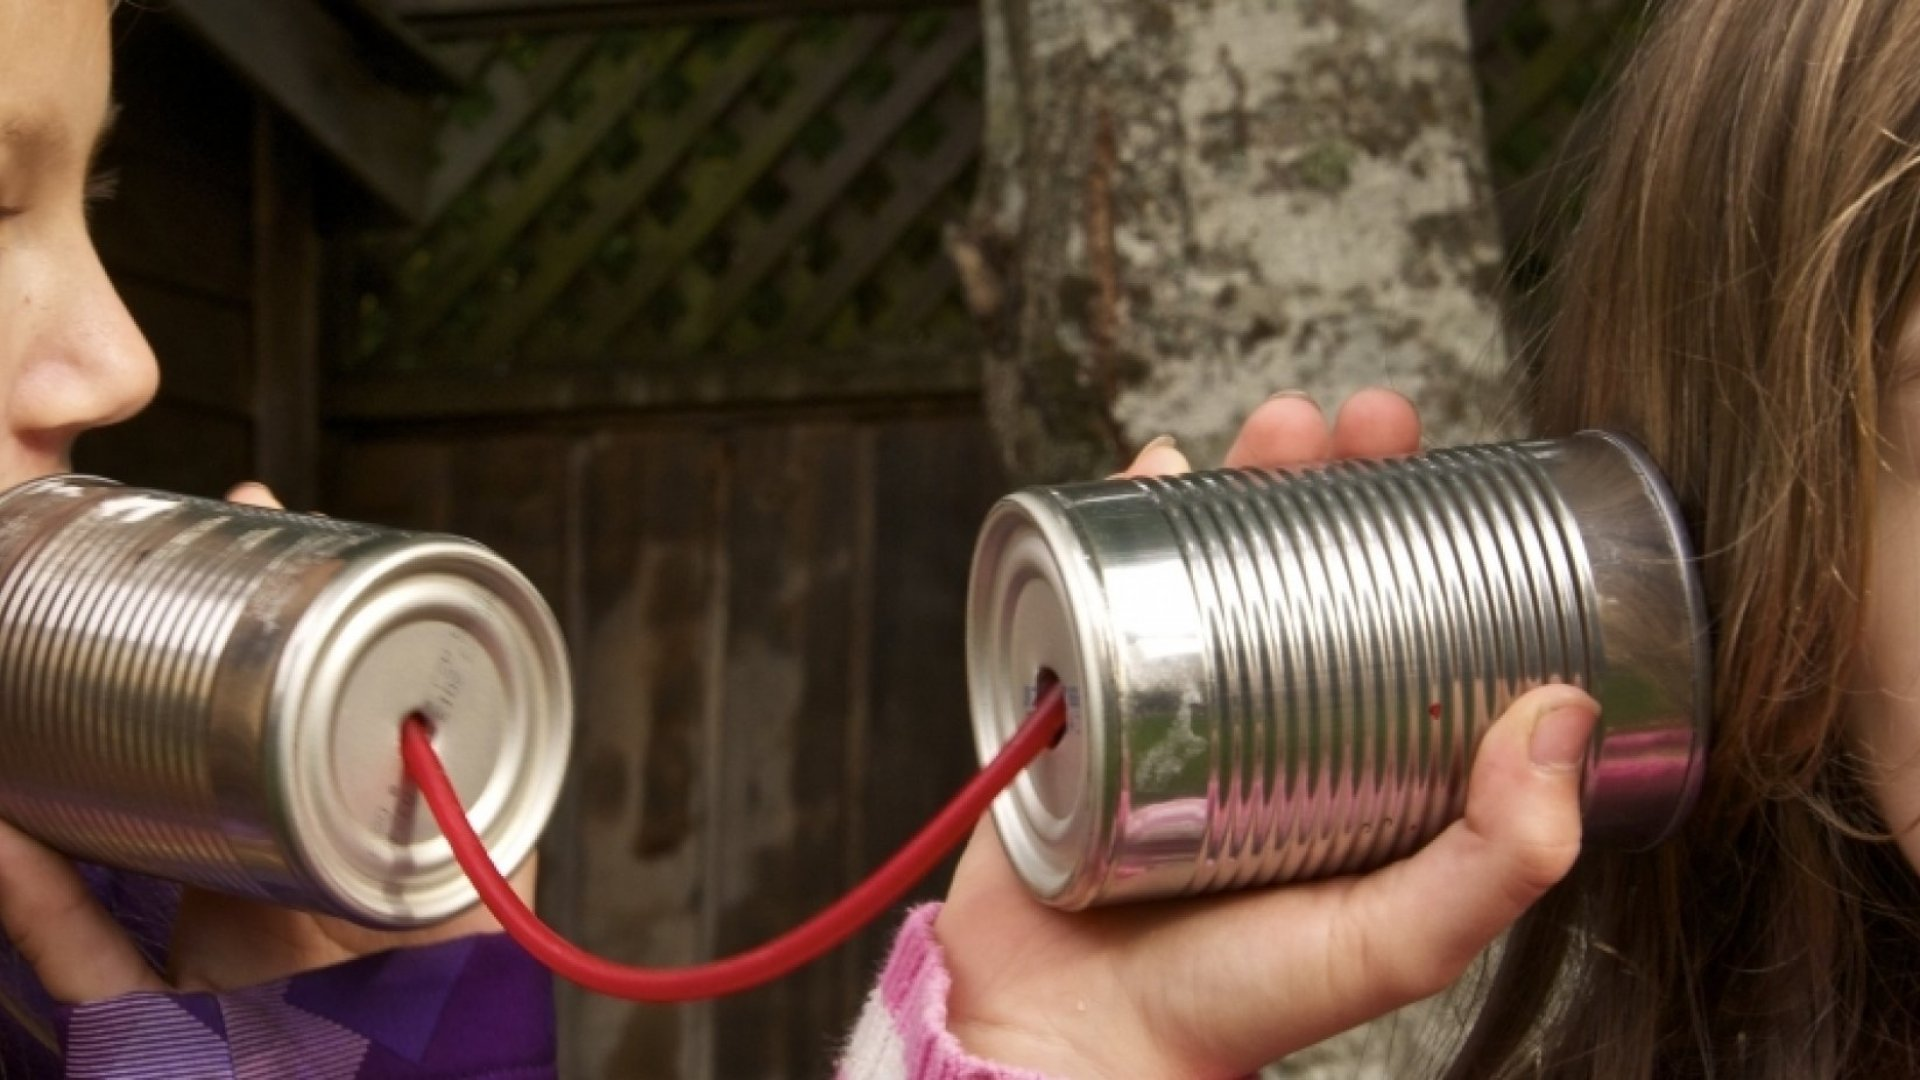 5 Reasons Talking Less and Listening More Can Build Your Business Faster